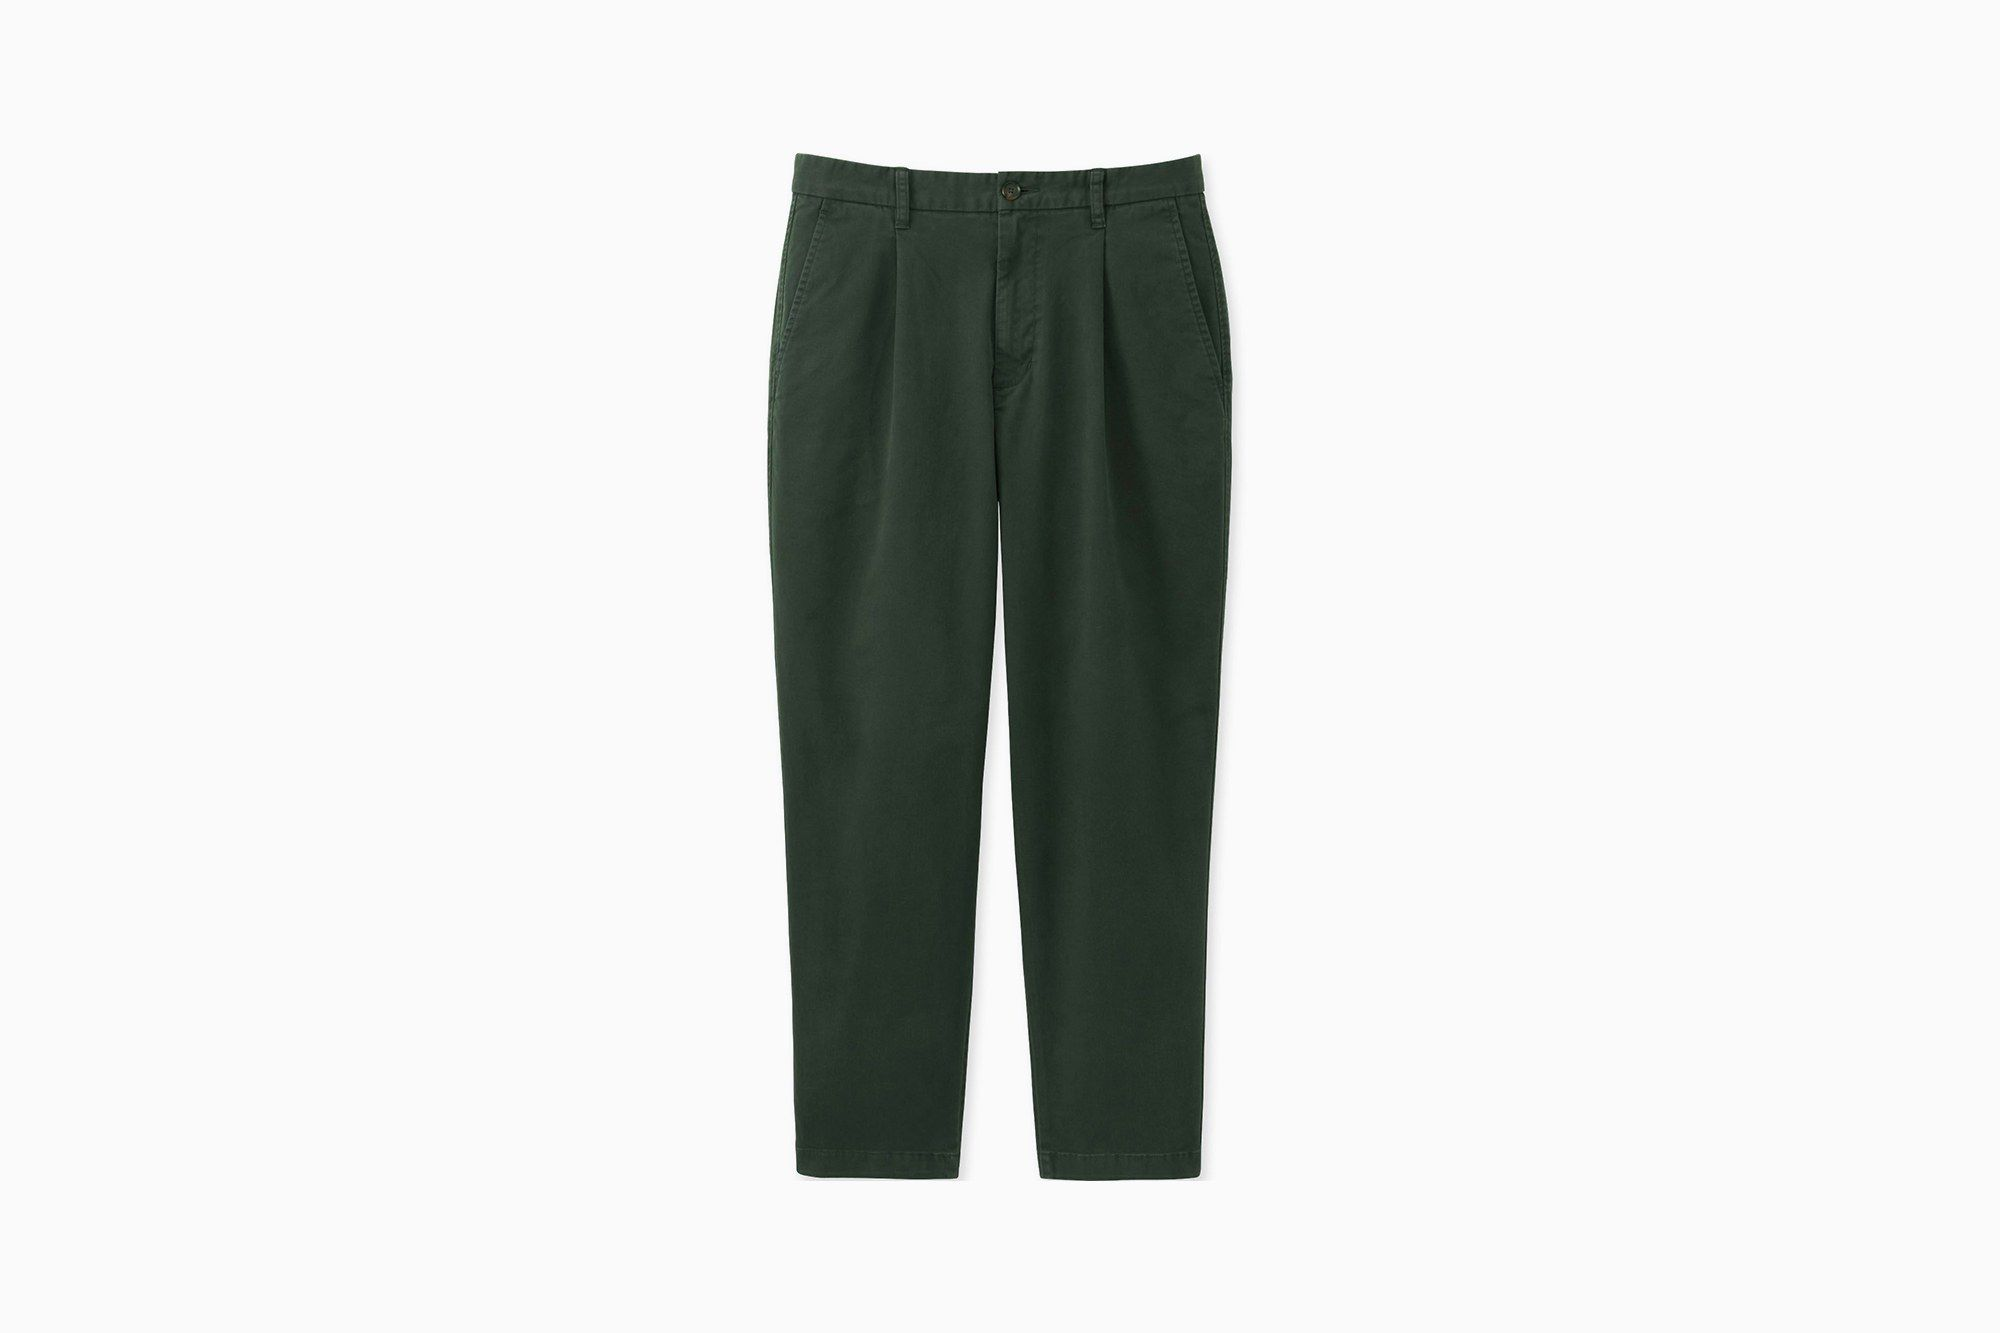 The best new menswear items to buy right now